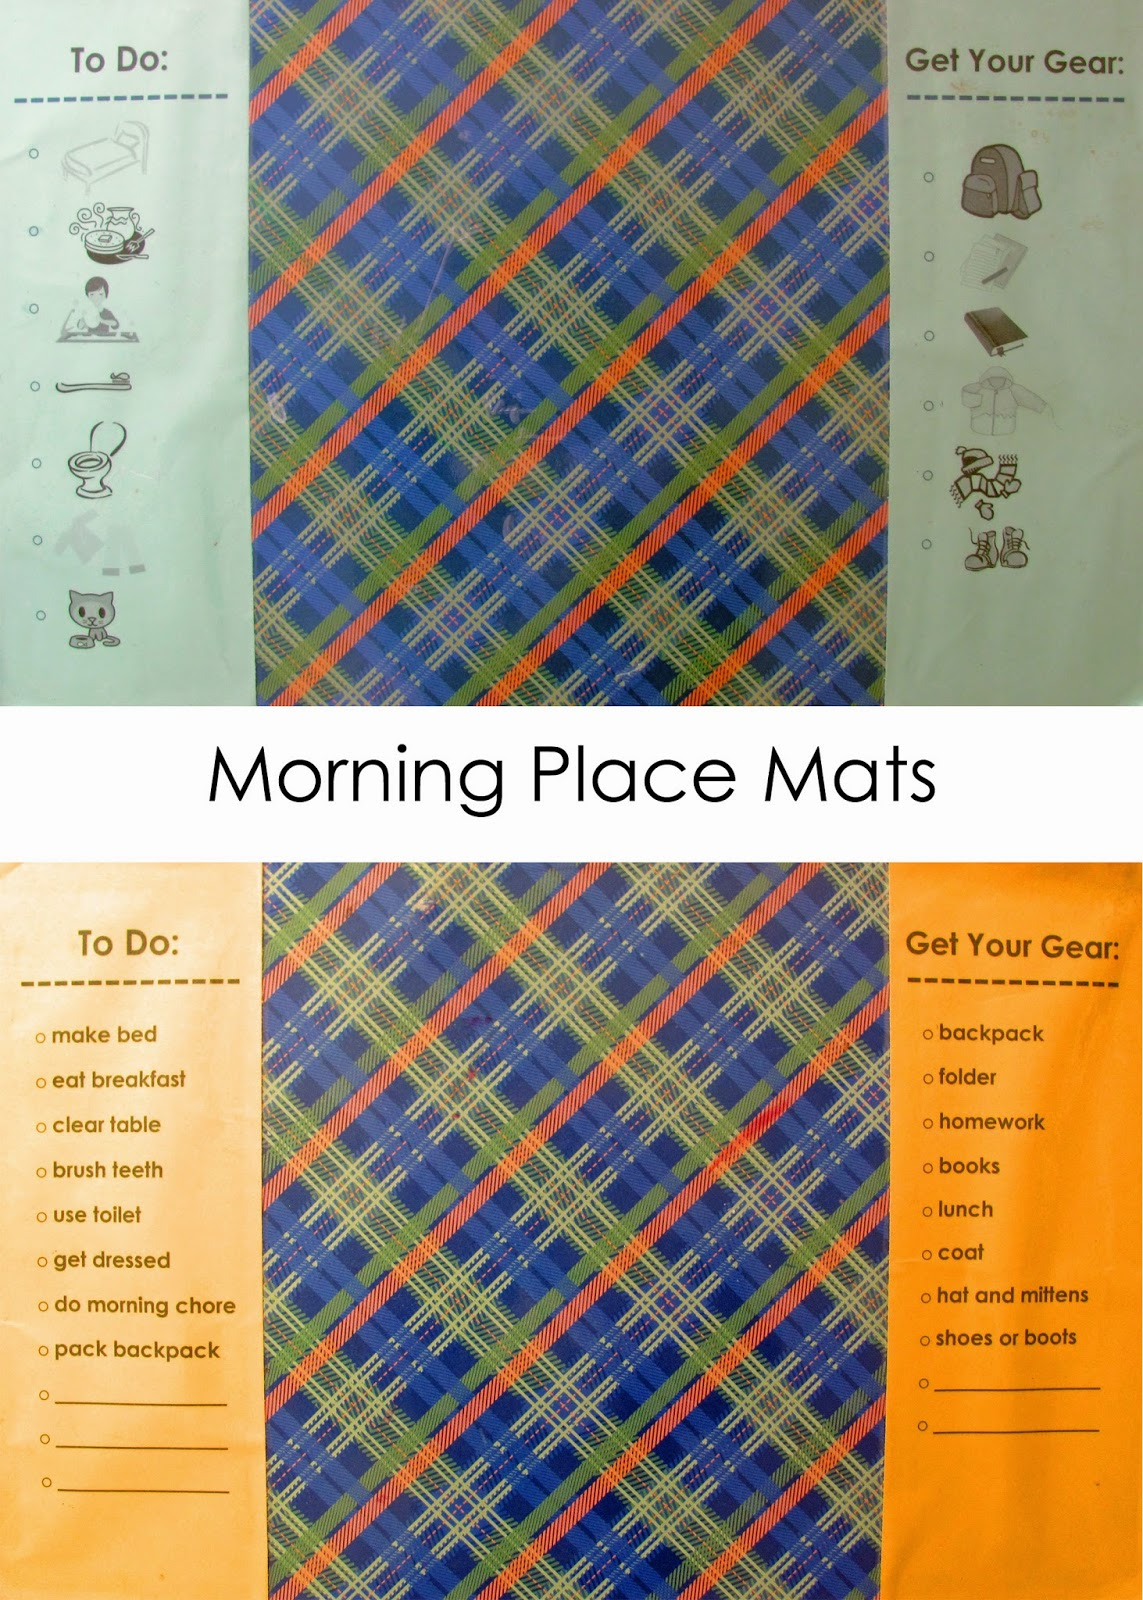 http://ichoosejoy2day.blogspot.com/2014/06/morning-place-mats.html